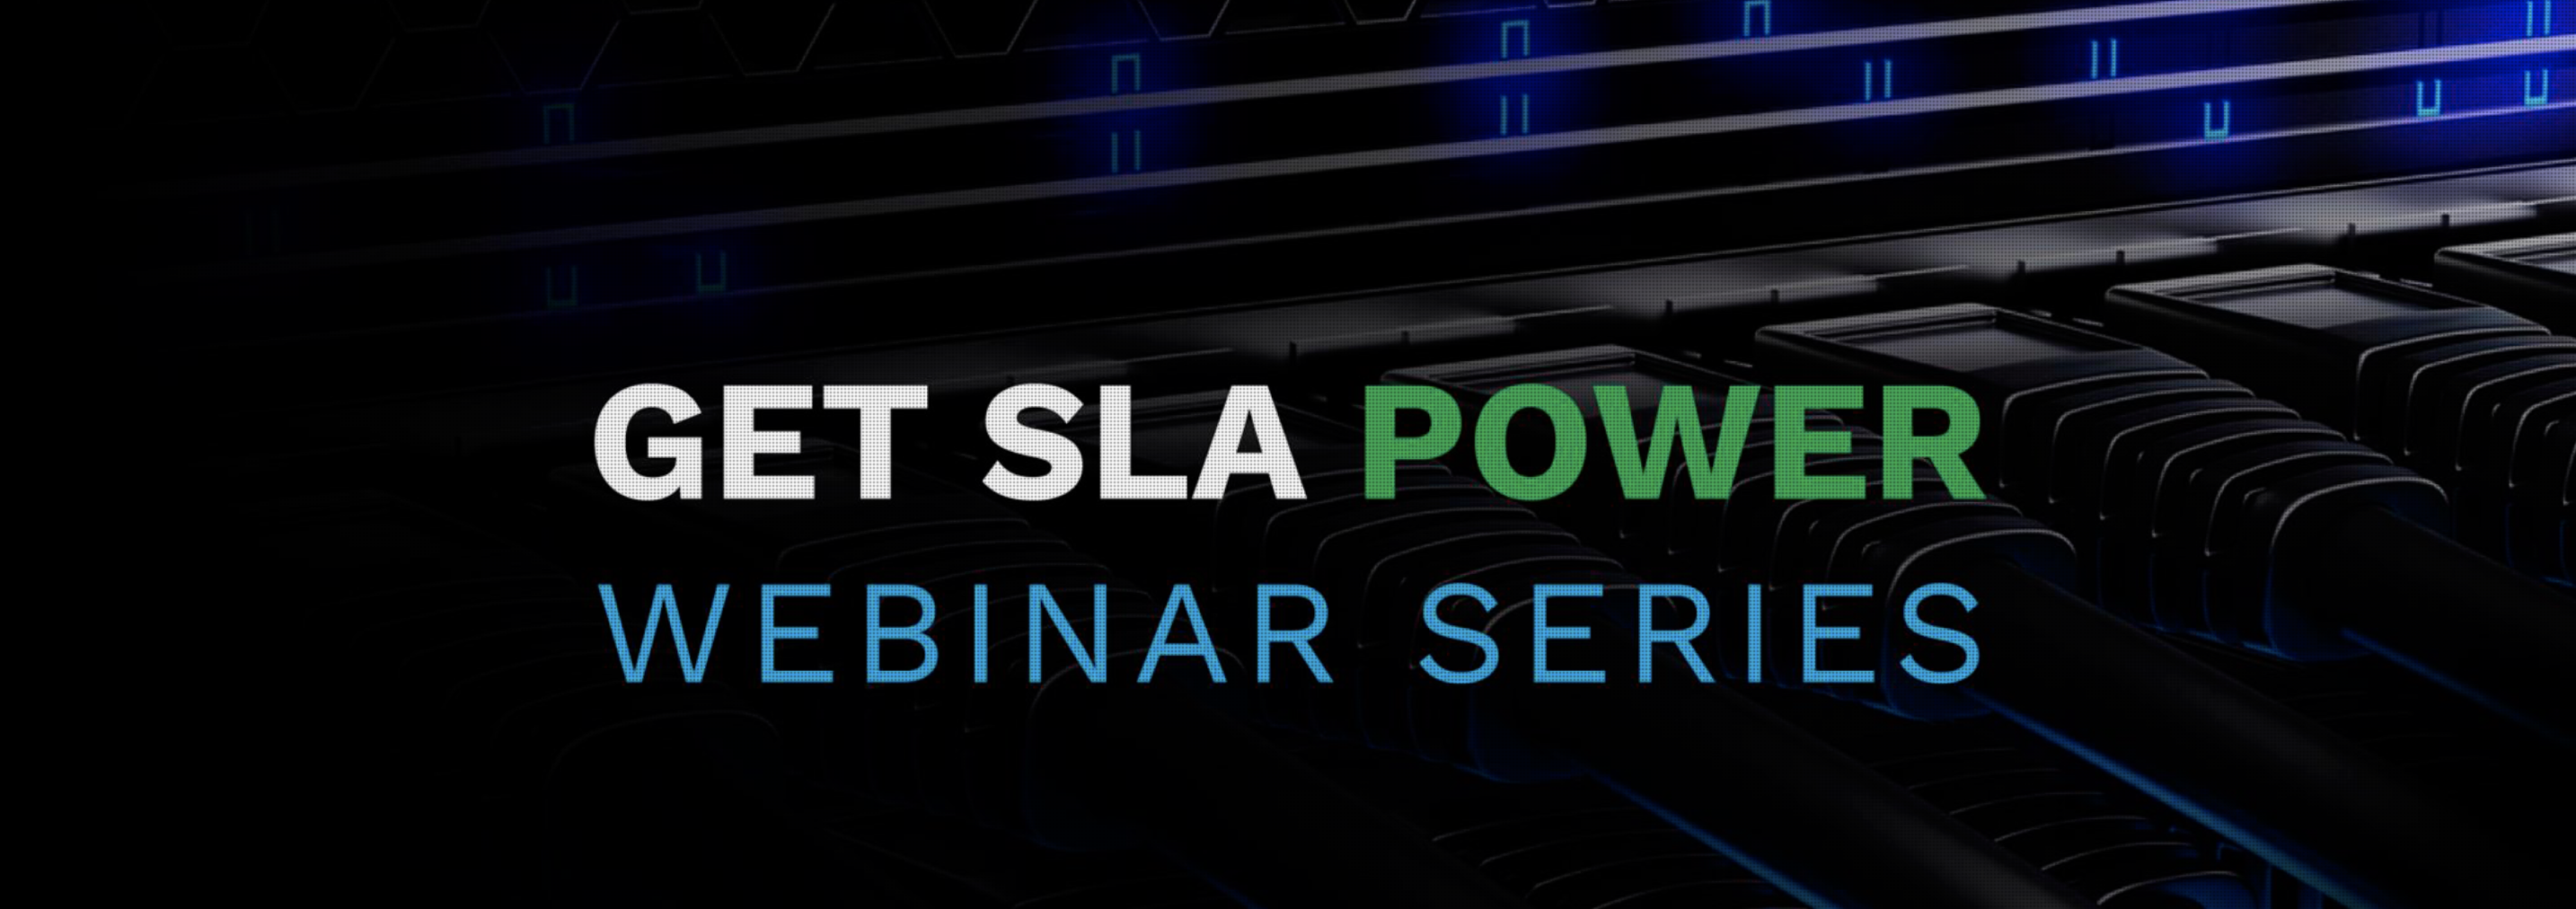 Webinar Series: Get Your SLA Power Back!